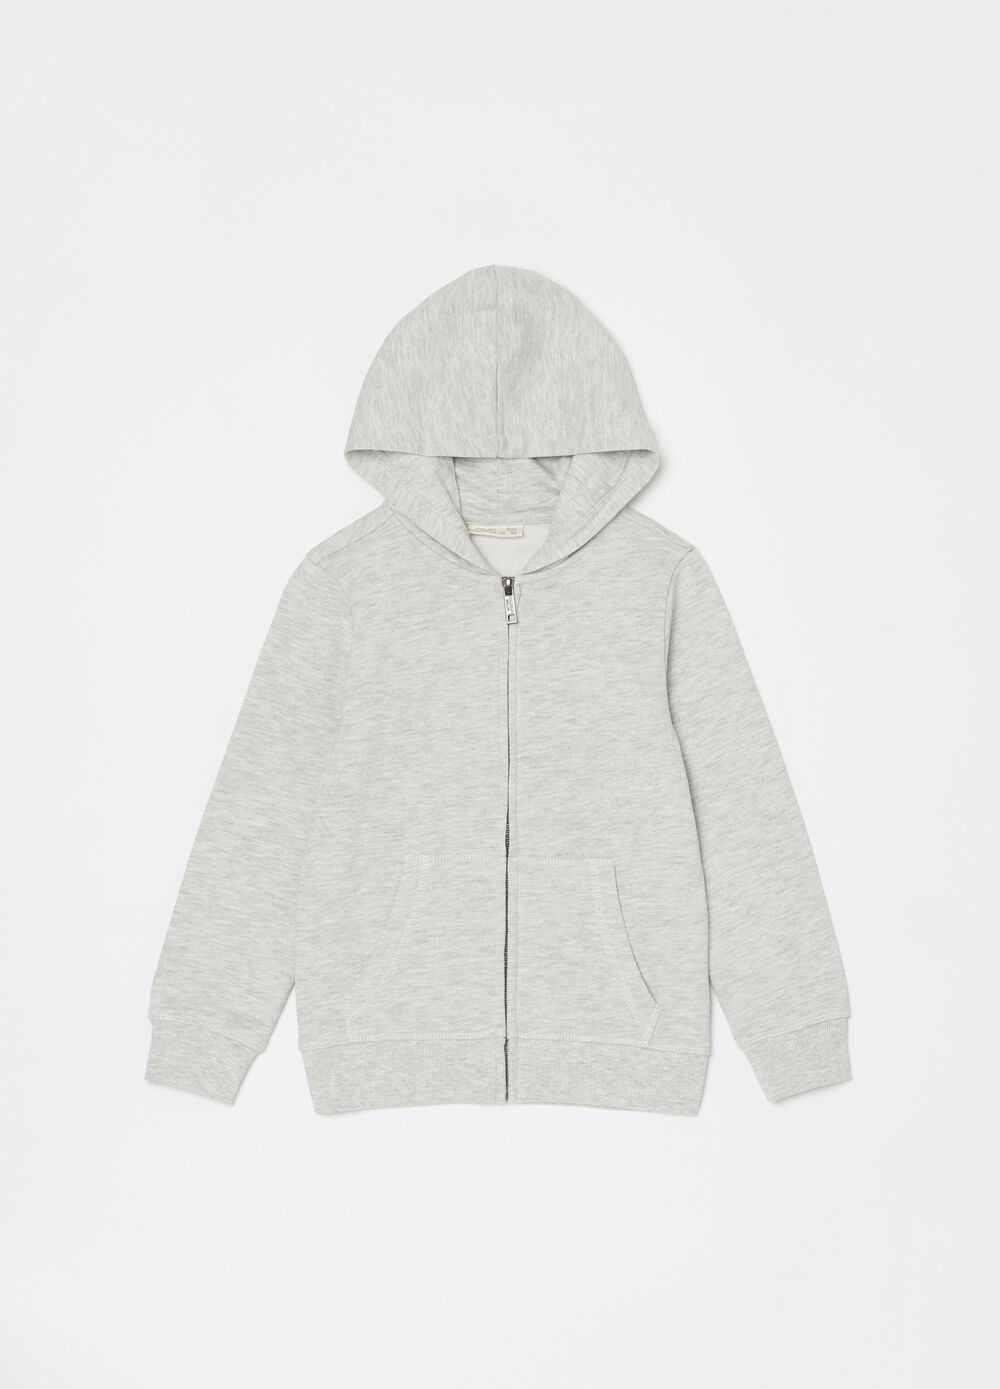 Mélange cotton and viscose full-zip sweatshirt